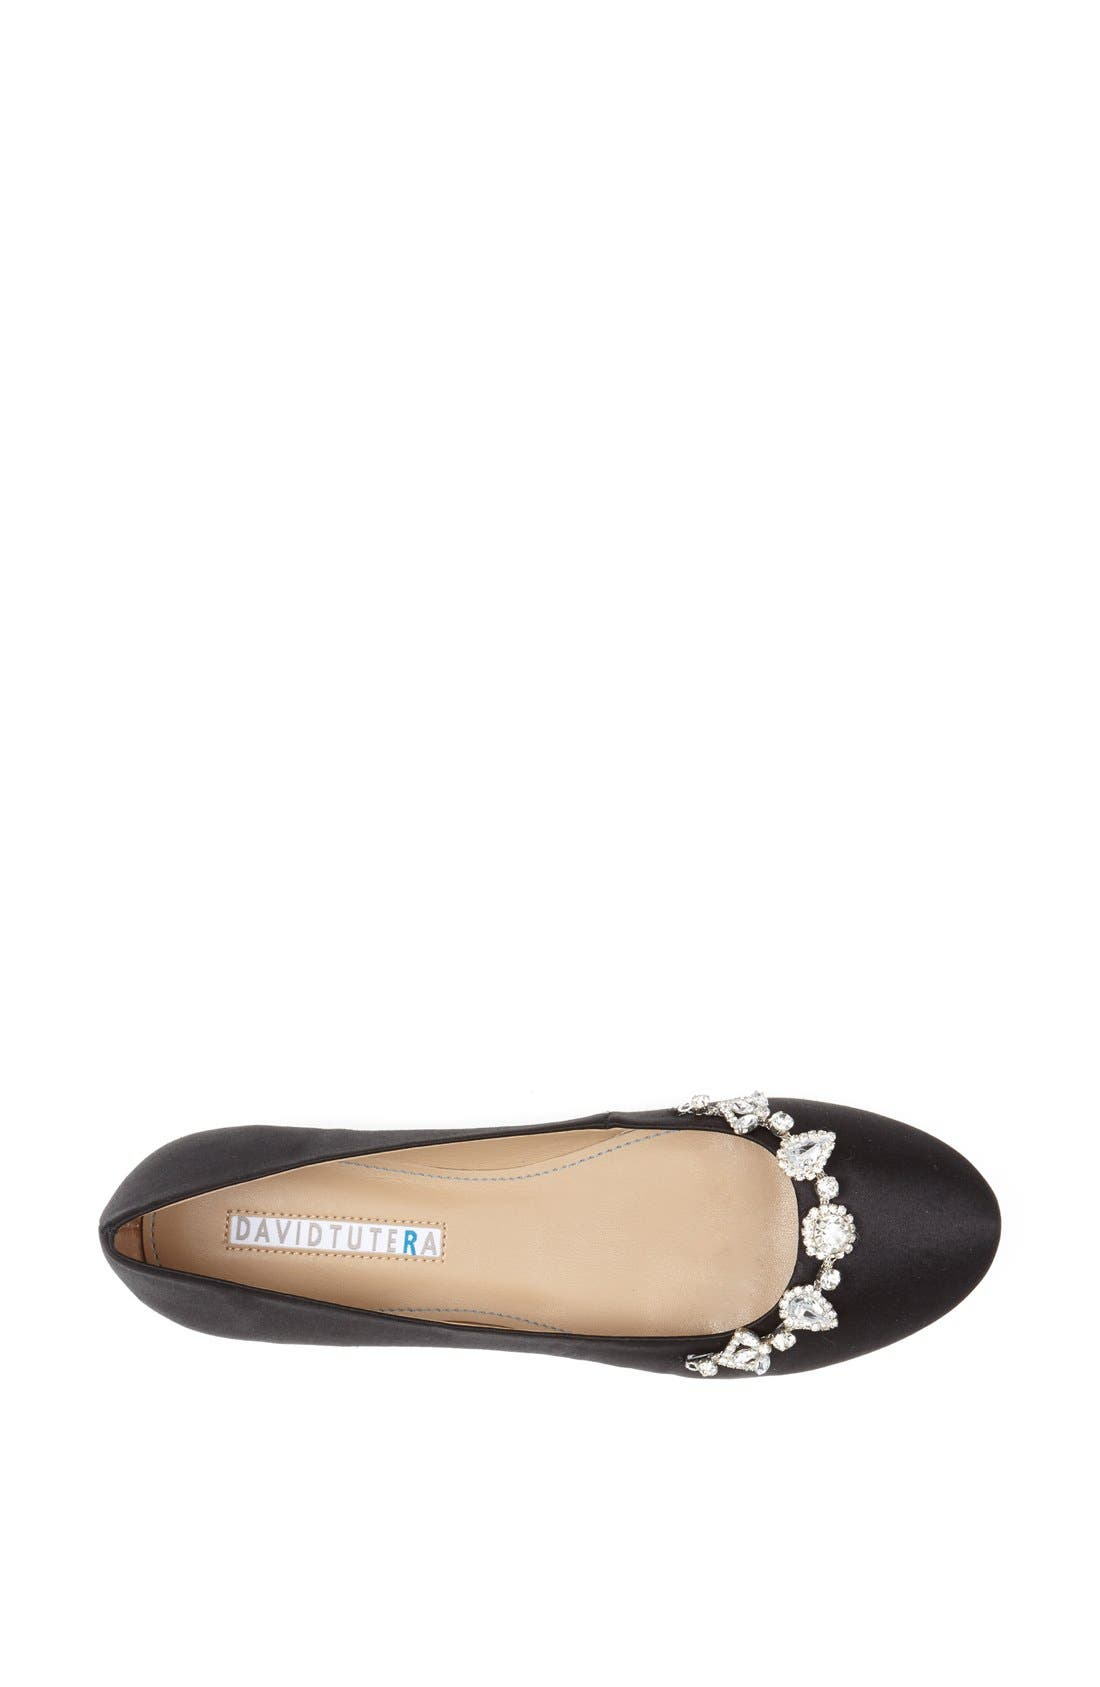 Alternate Image 3  - David Tutera 'Blossom' Flat